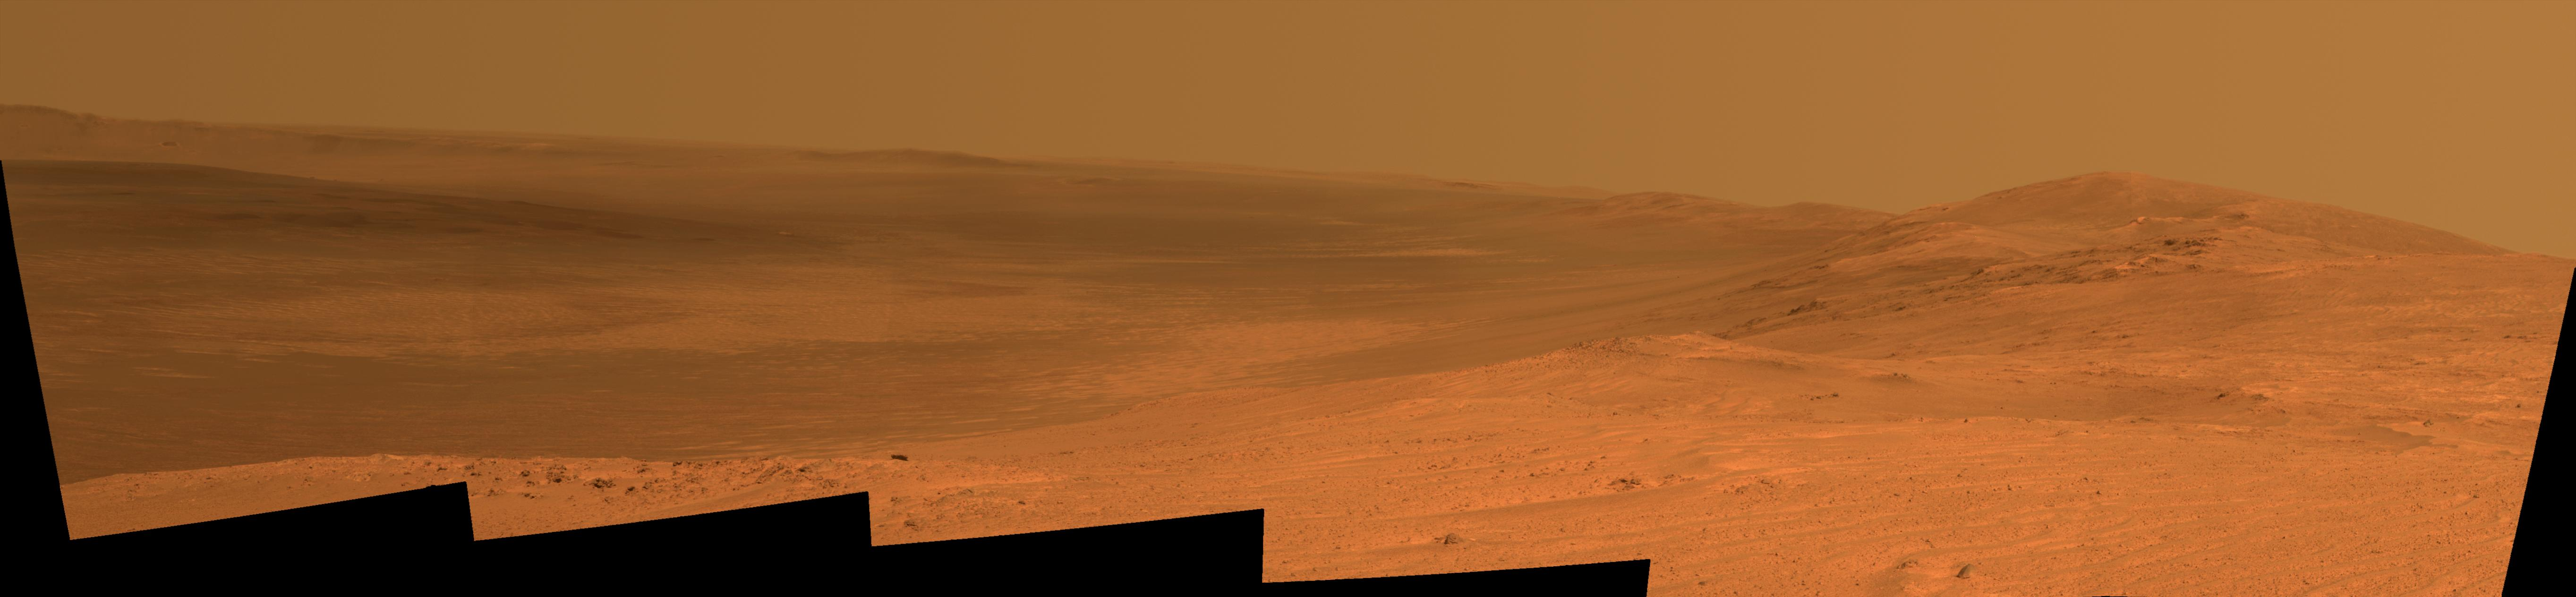 Spectacular View of Huge Mars Crater Caught by Old NASA Rover (Photo)